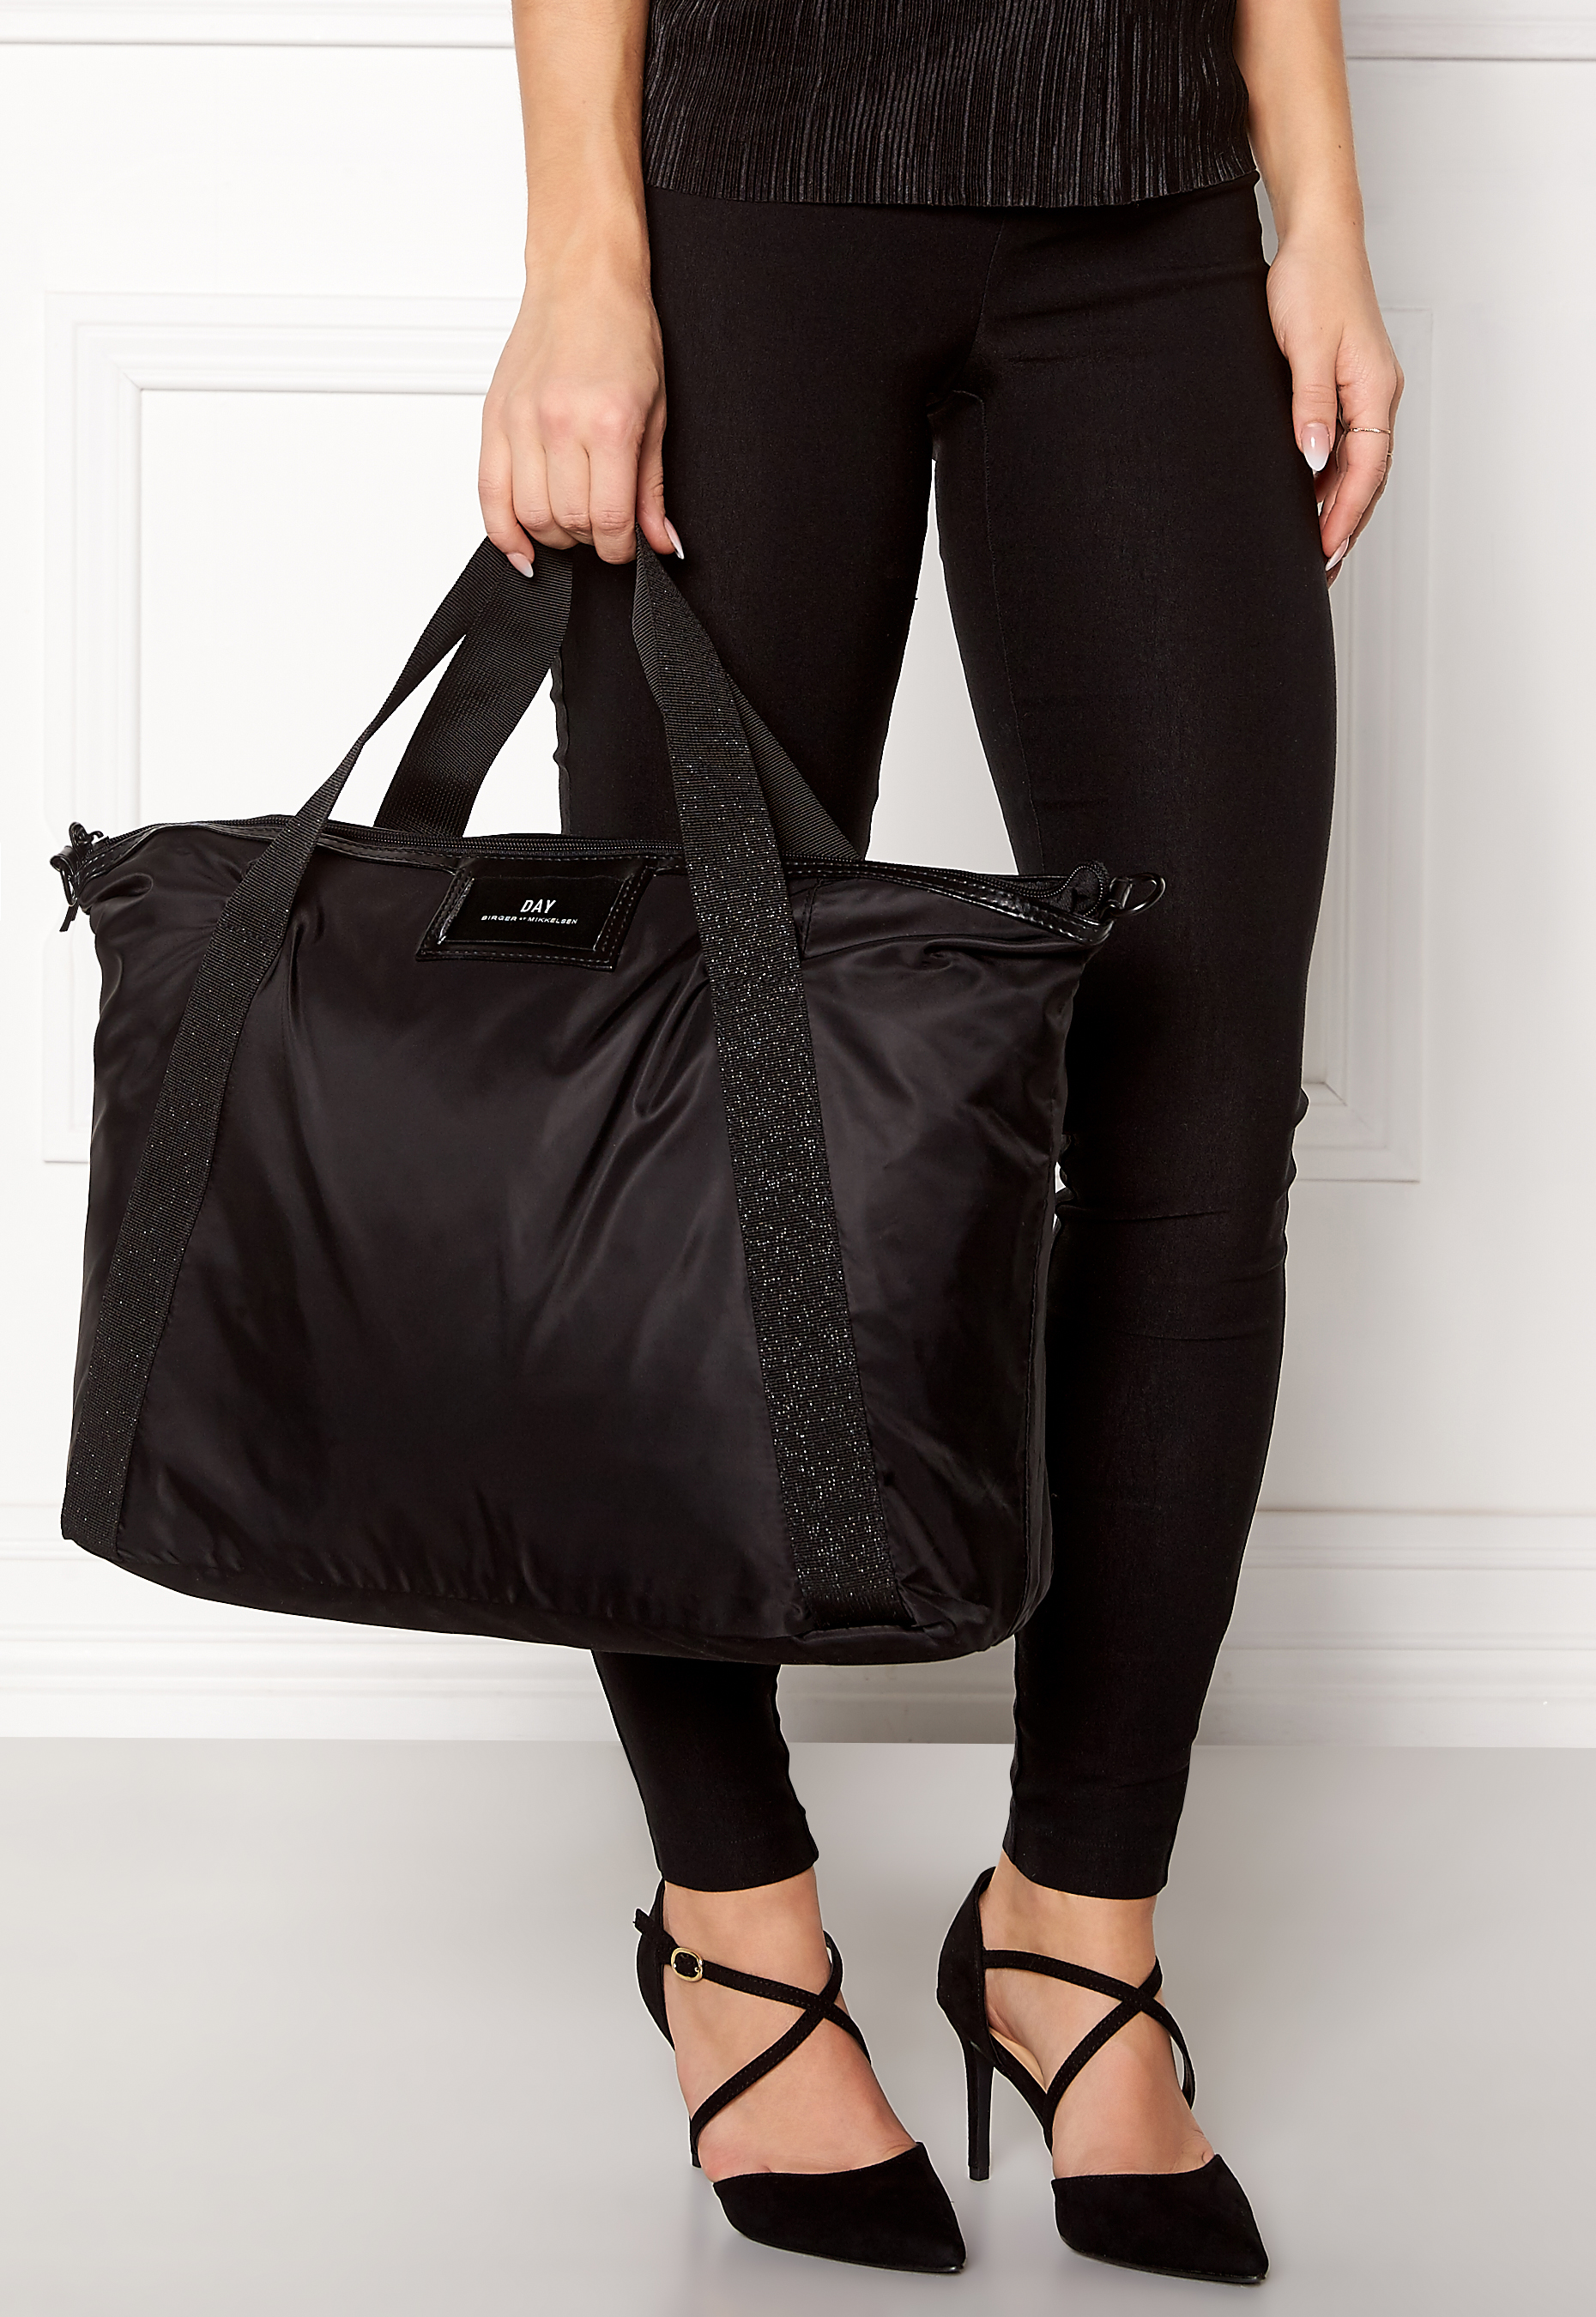 Day Birger et Mikkelsen Day Gweneth Lurex Bag Black Bubbleroom